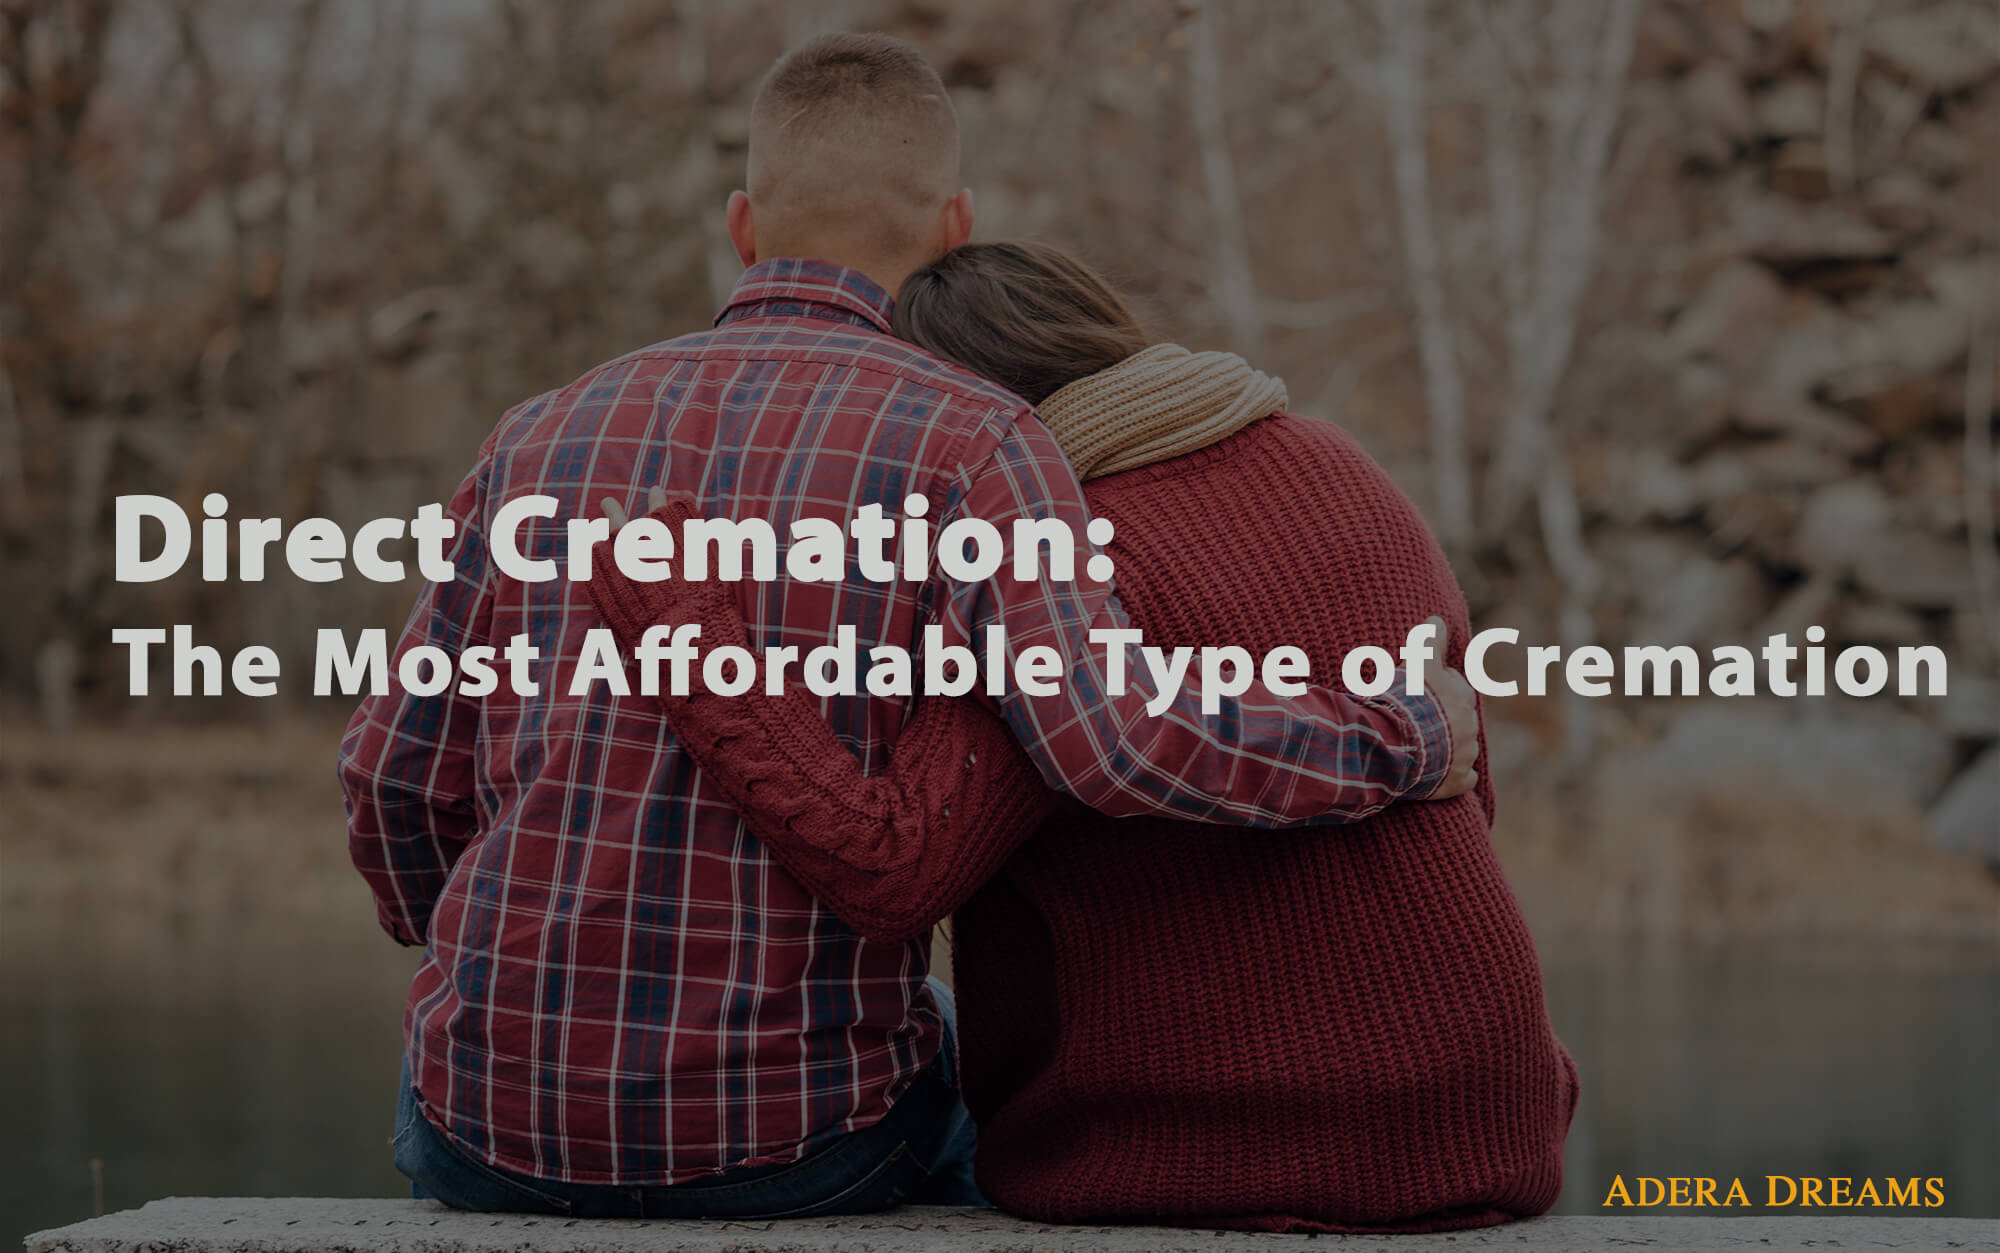 Direct Cremation: The Most Affordable Type of Cremation